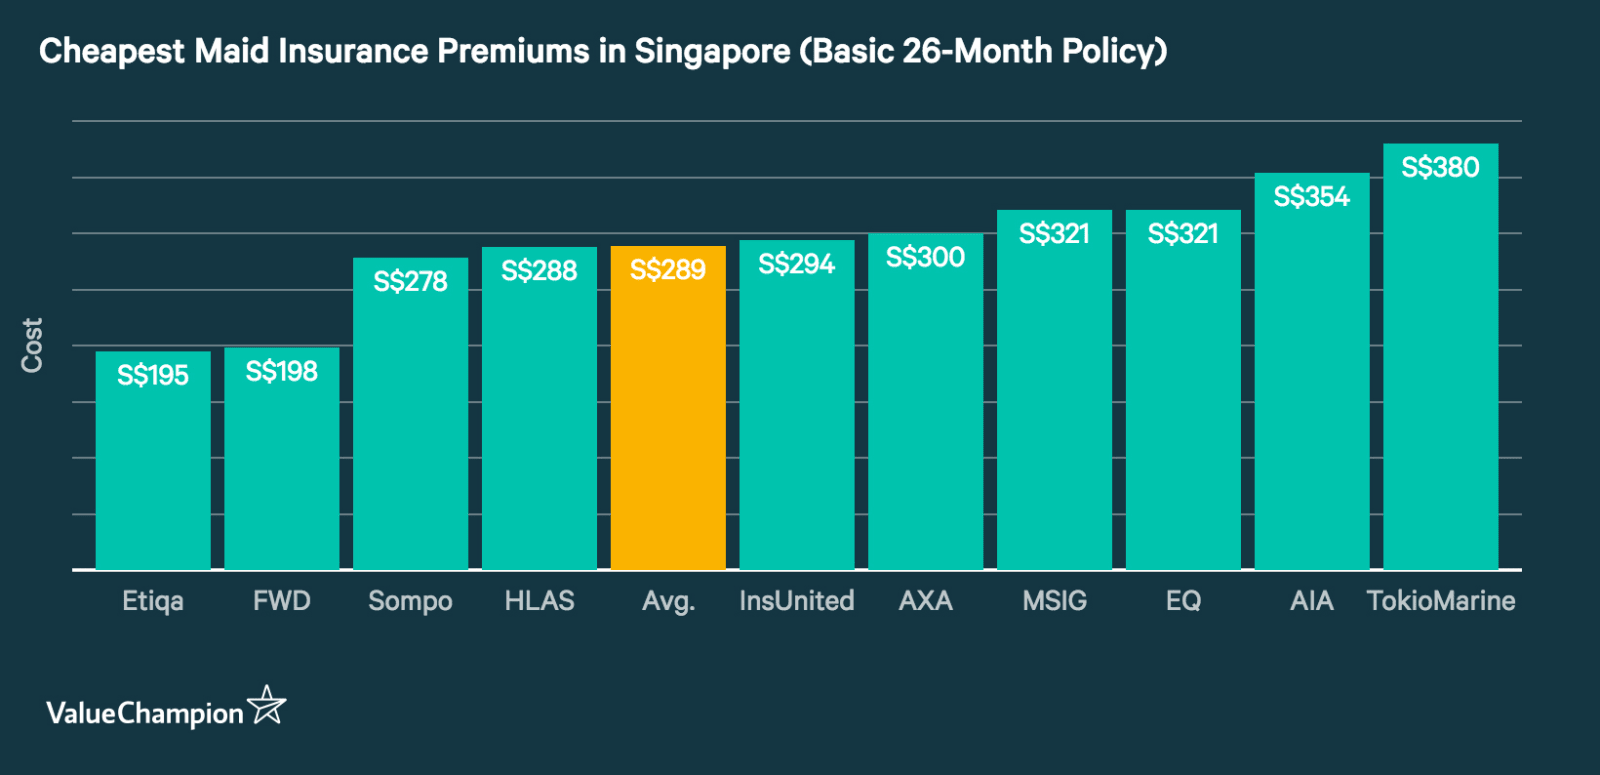 Prices for a 26-month maid insurance policy across a variety of insurers in Singapore